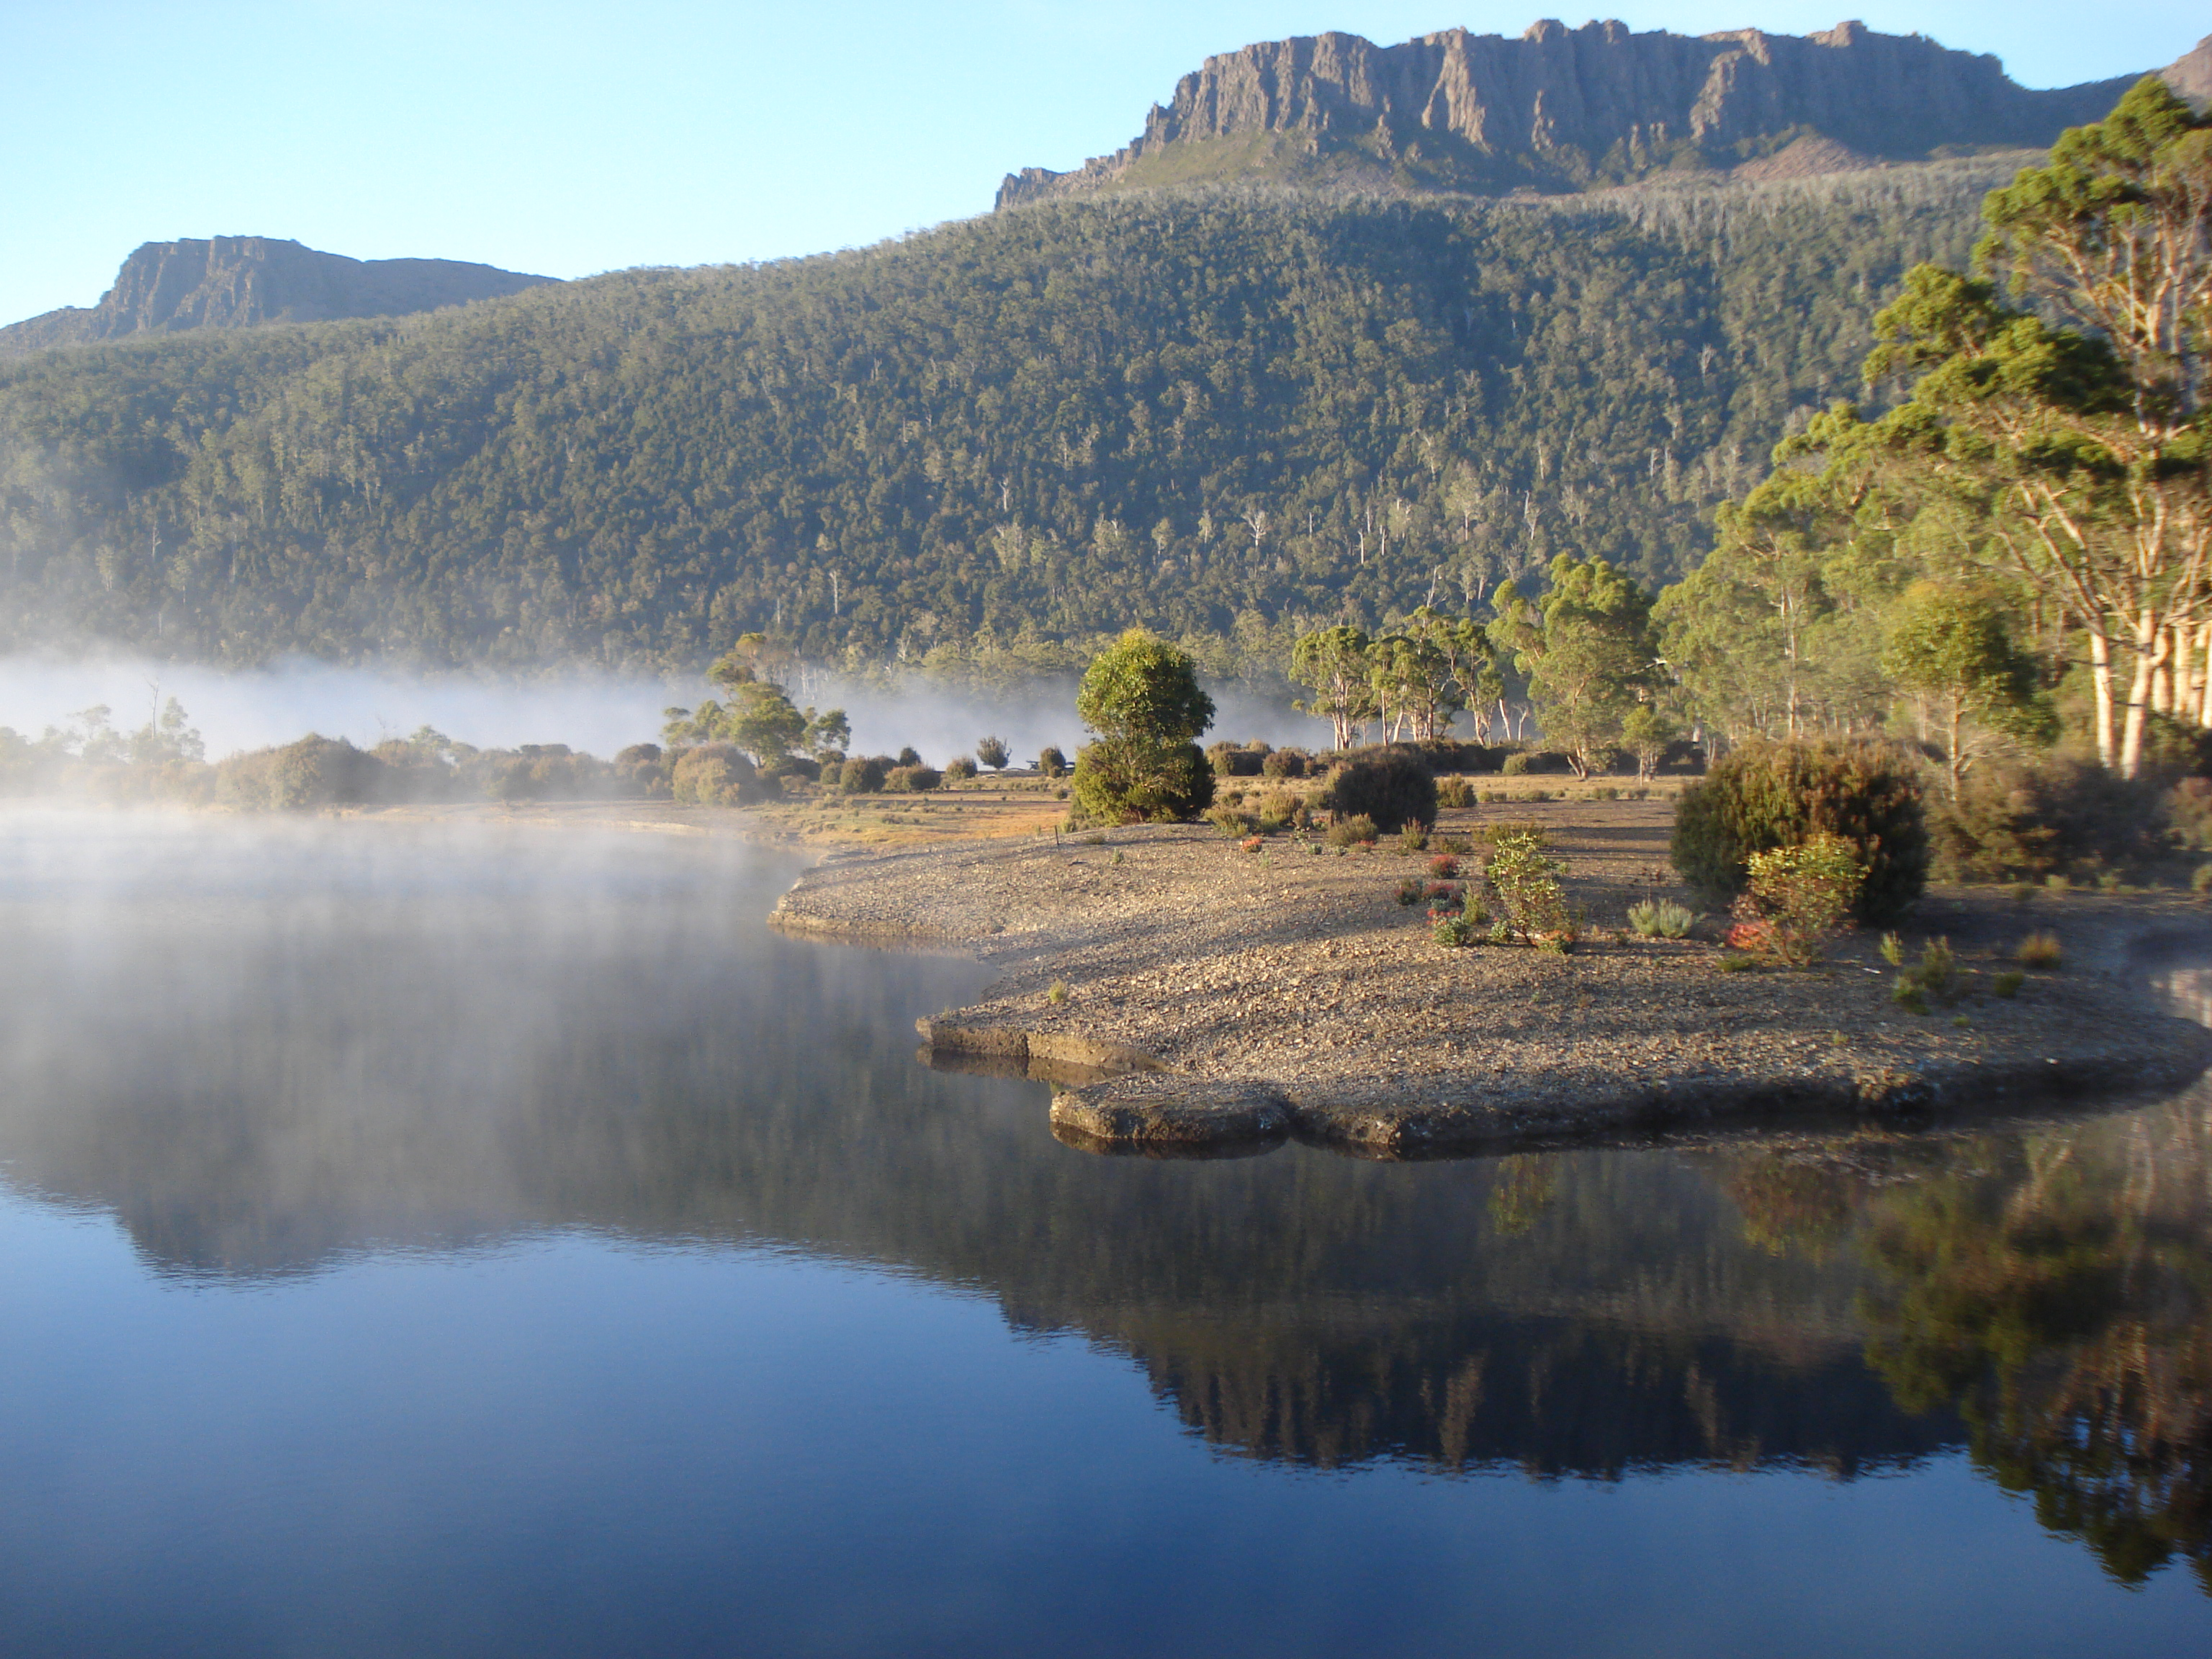 On the Tasmanian Overland Track